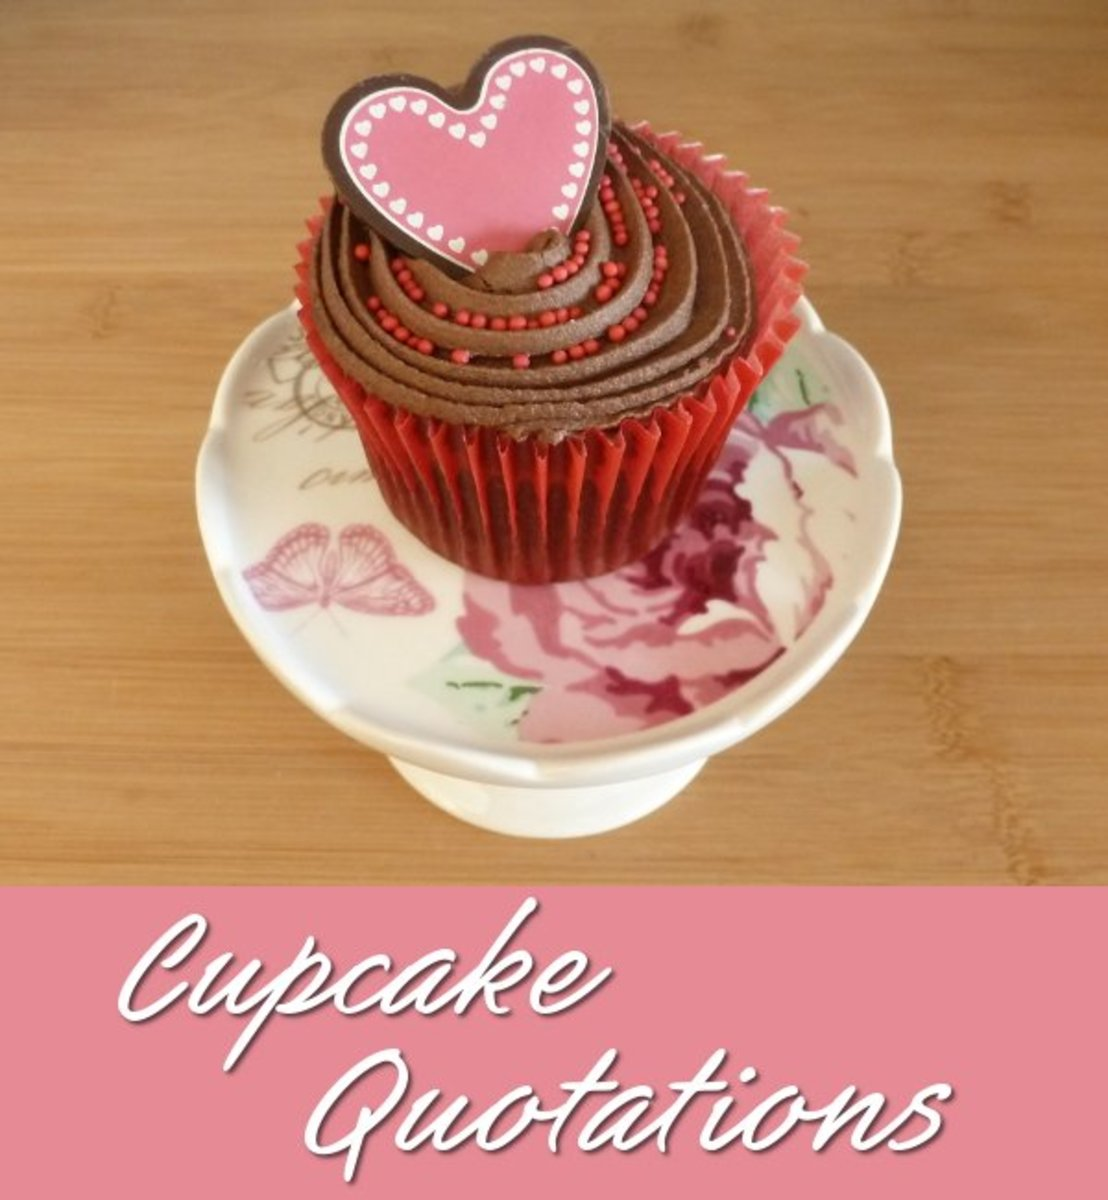 Lots of Cute Cupcake Quotes and Sayings